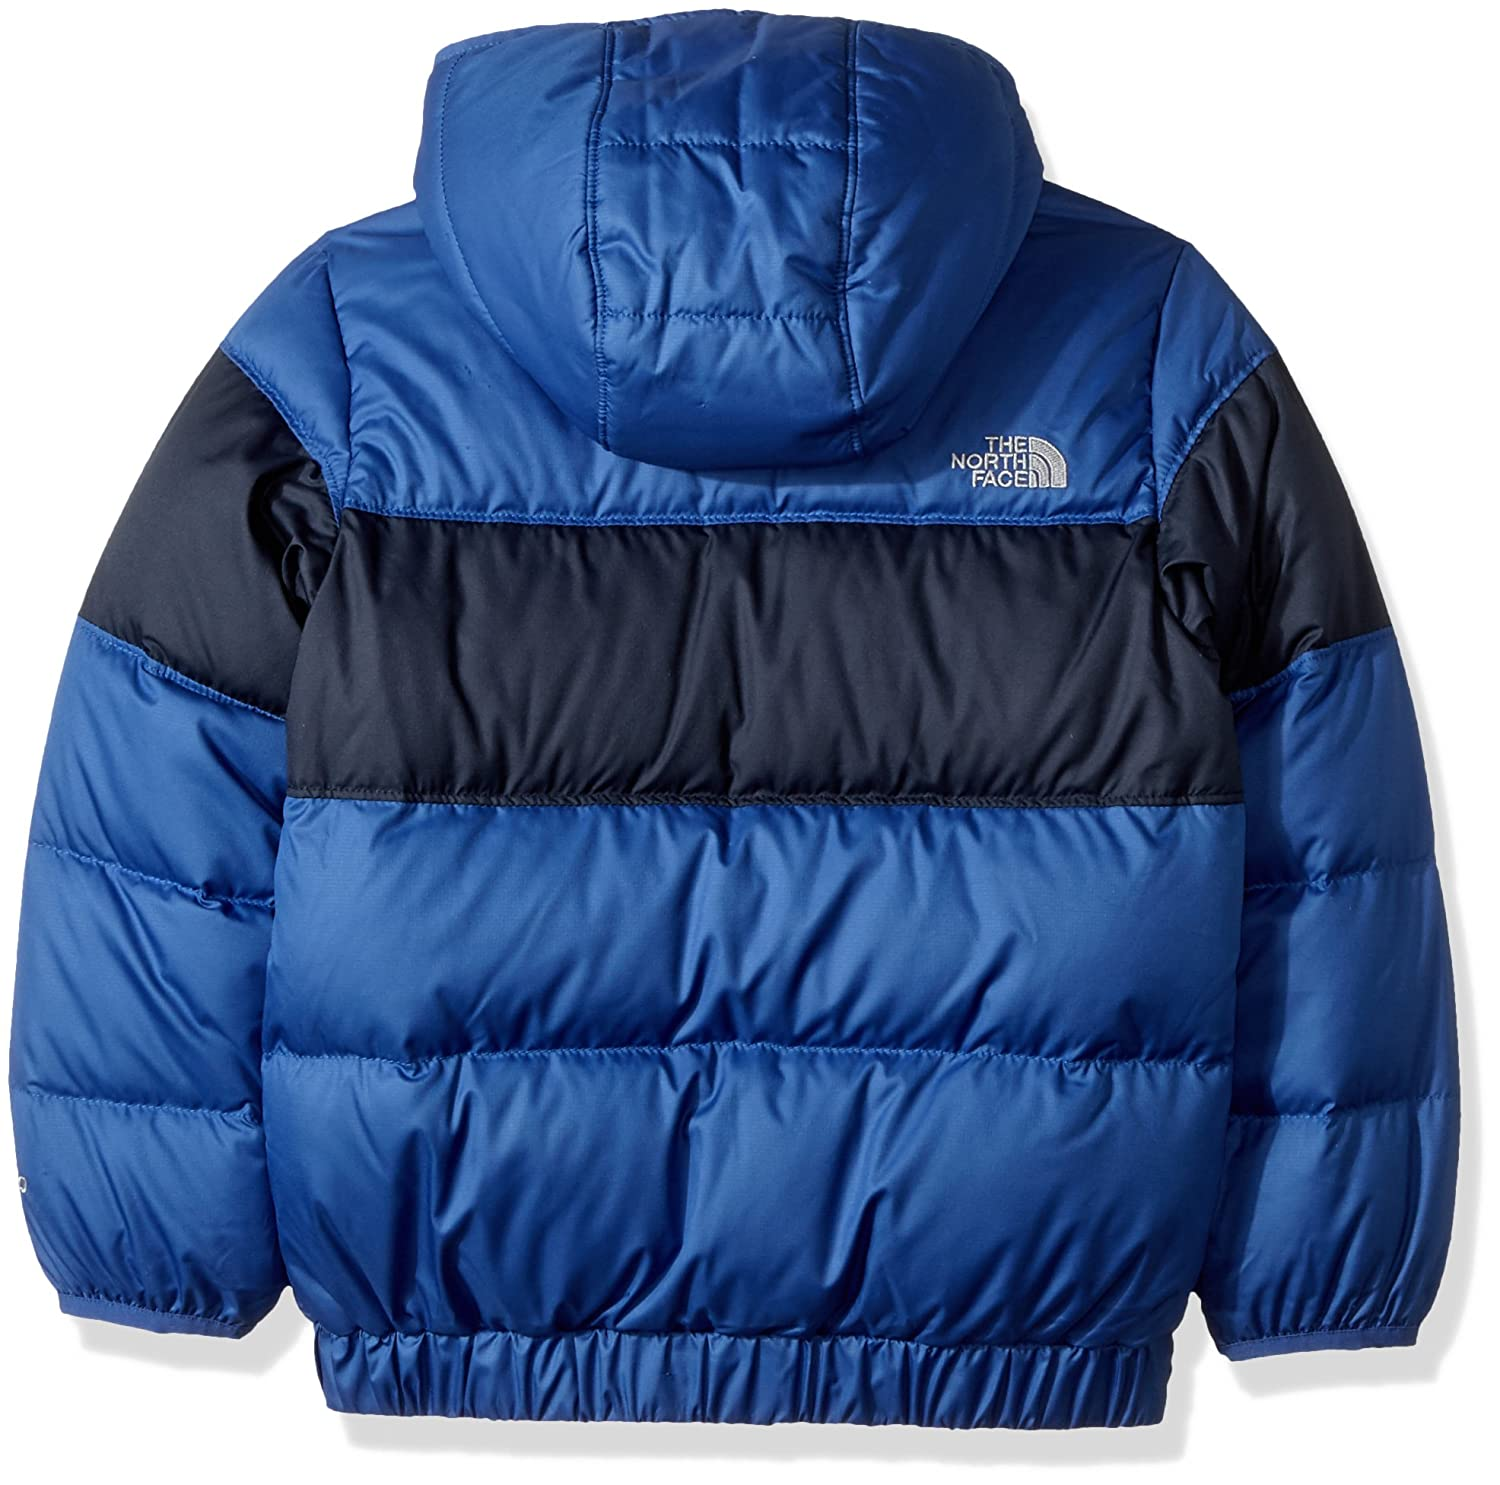 53ce5eb18 The North Face Toddler Boy's Moondoggy 2.0 Down Jacket - Bright ...